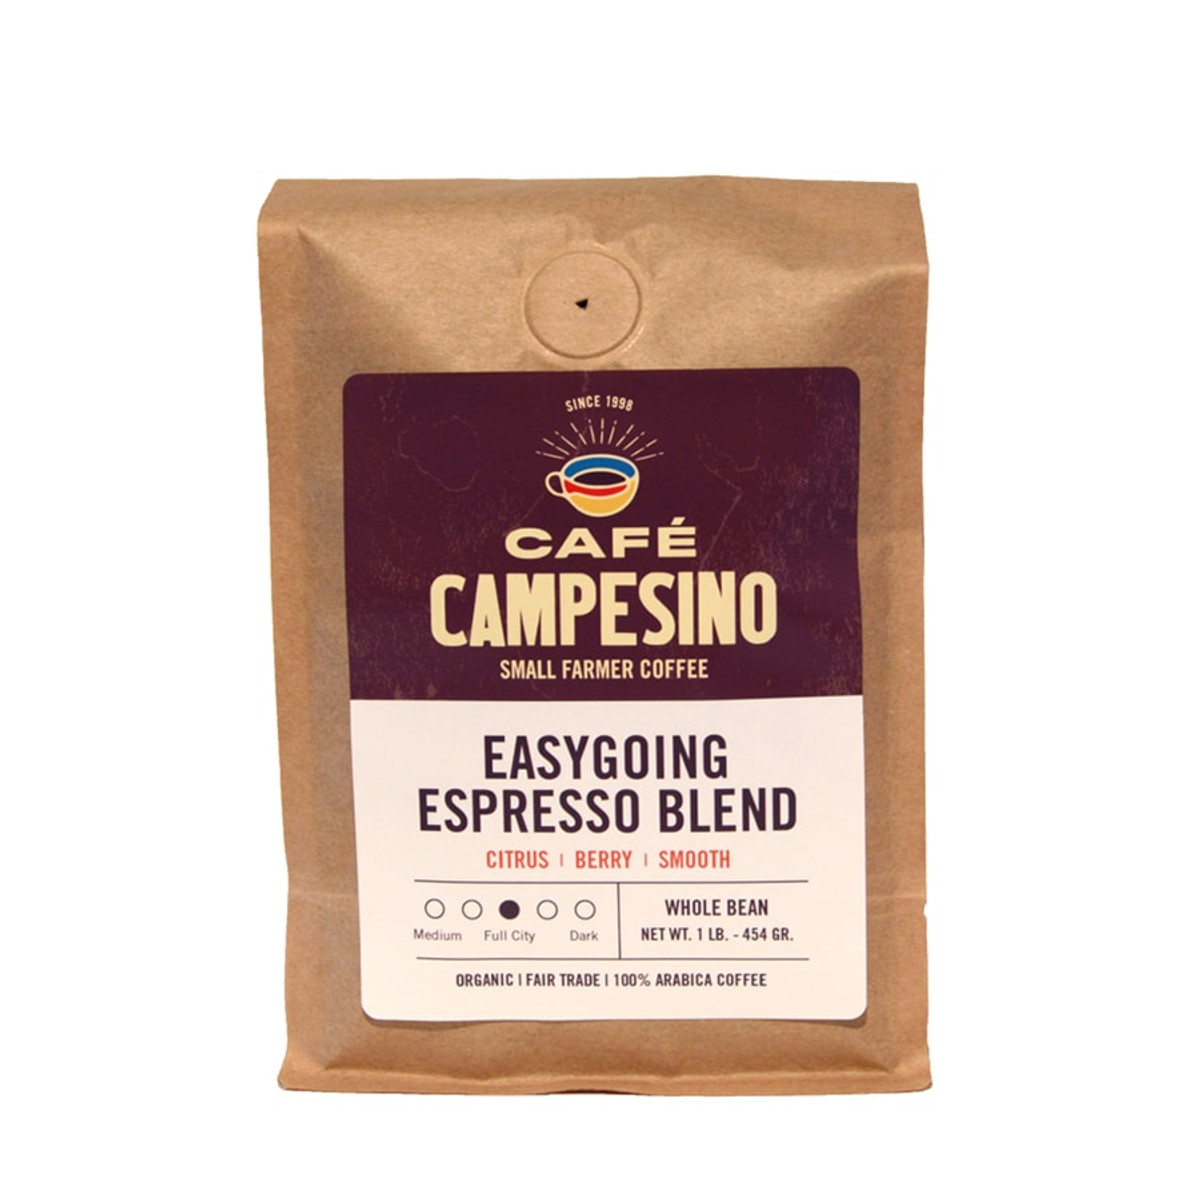 Easygoing Espresso is a rich coffee with pronounced berry notes that comes from our combination of a proprietary espresso blend and South American beans